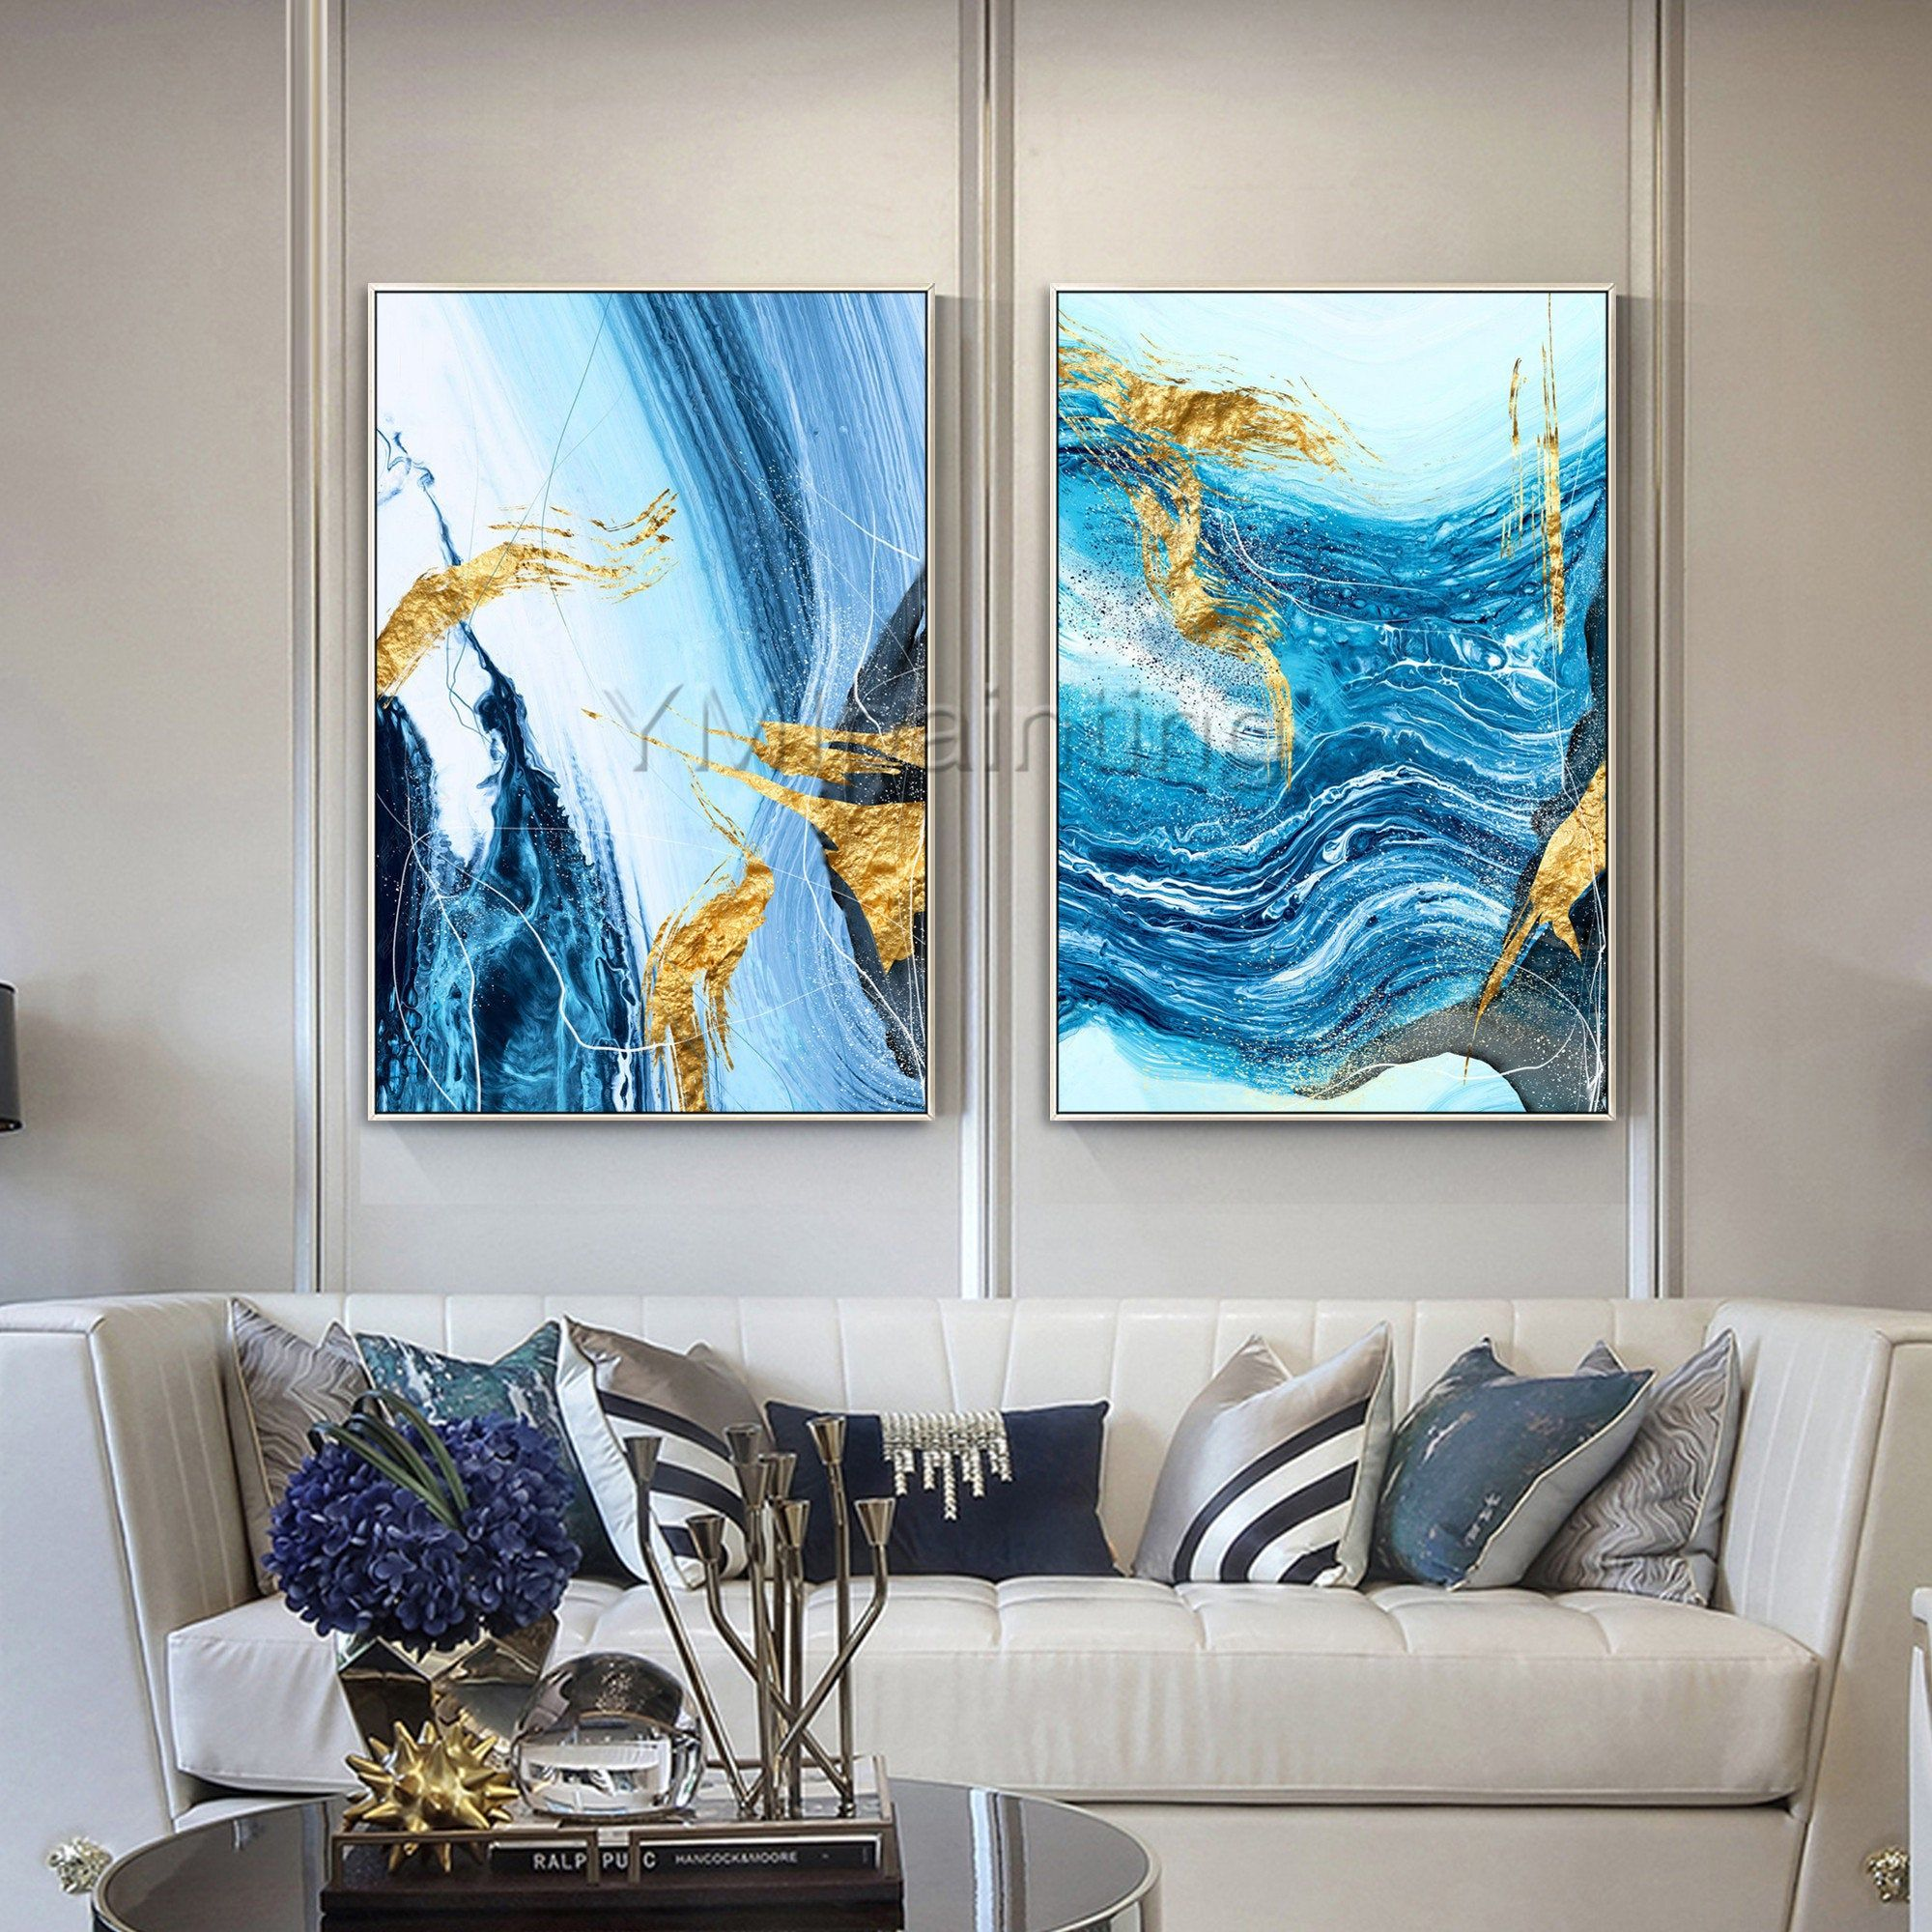 Framed Wall Art Set Of 2 Wall Art Abstract Paintings On Canvas Etsy Framed Wall Art Sets Canvas Painting Framed Wall Art